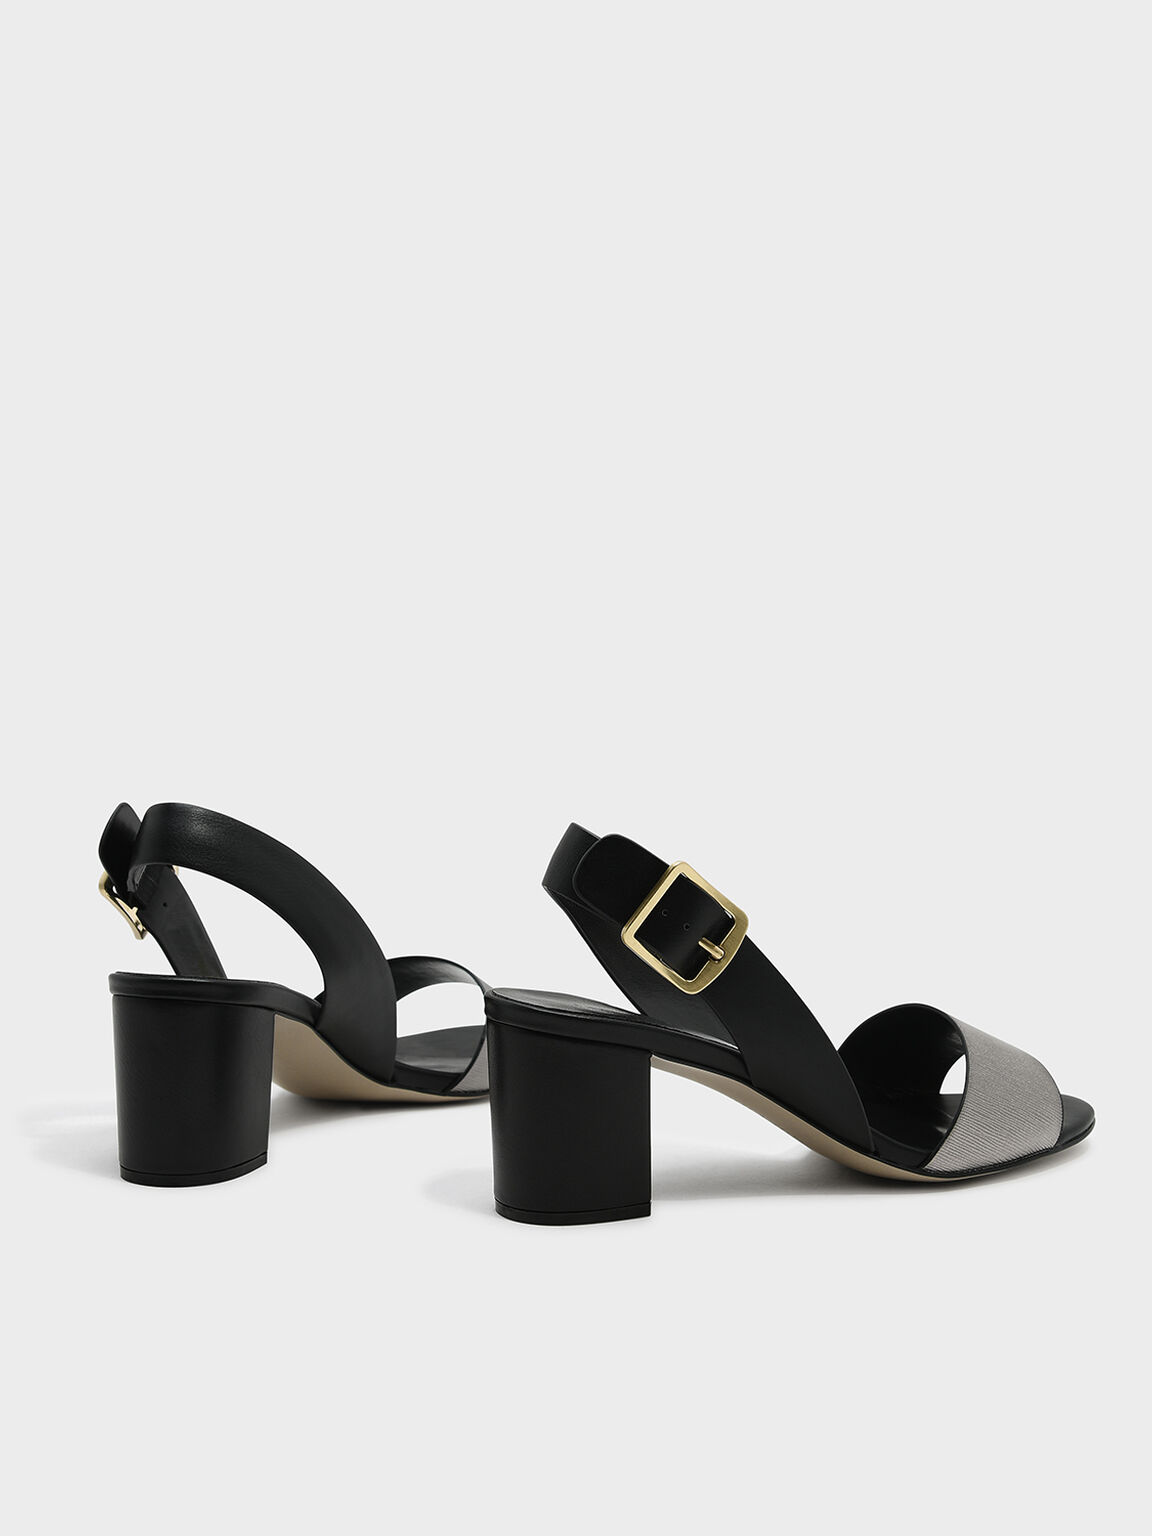 Sling Back Heels, Black, hi-res